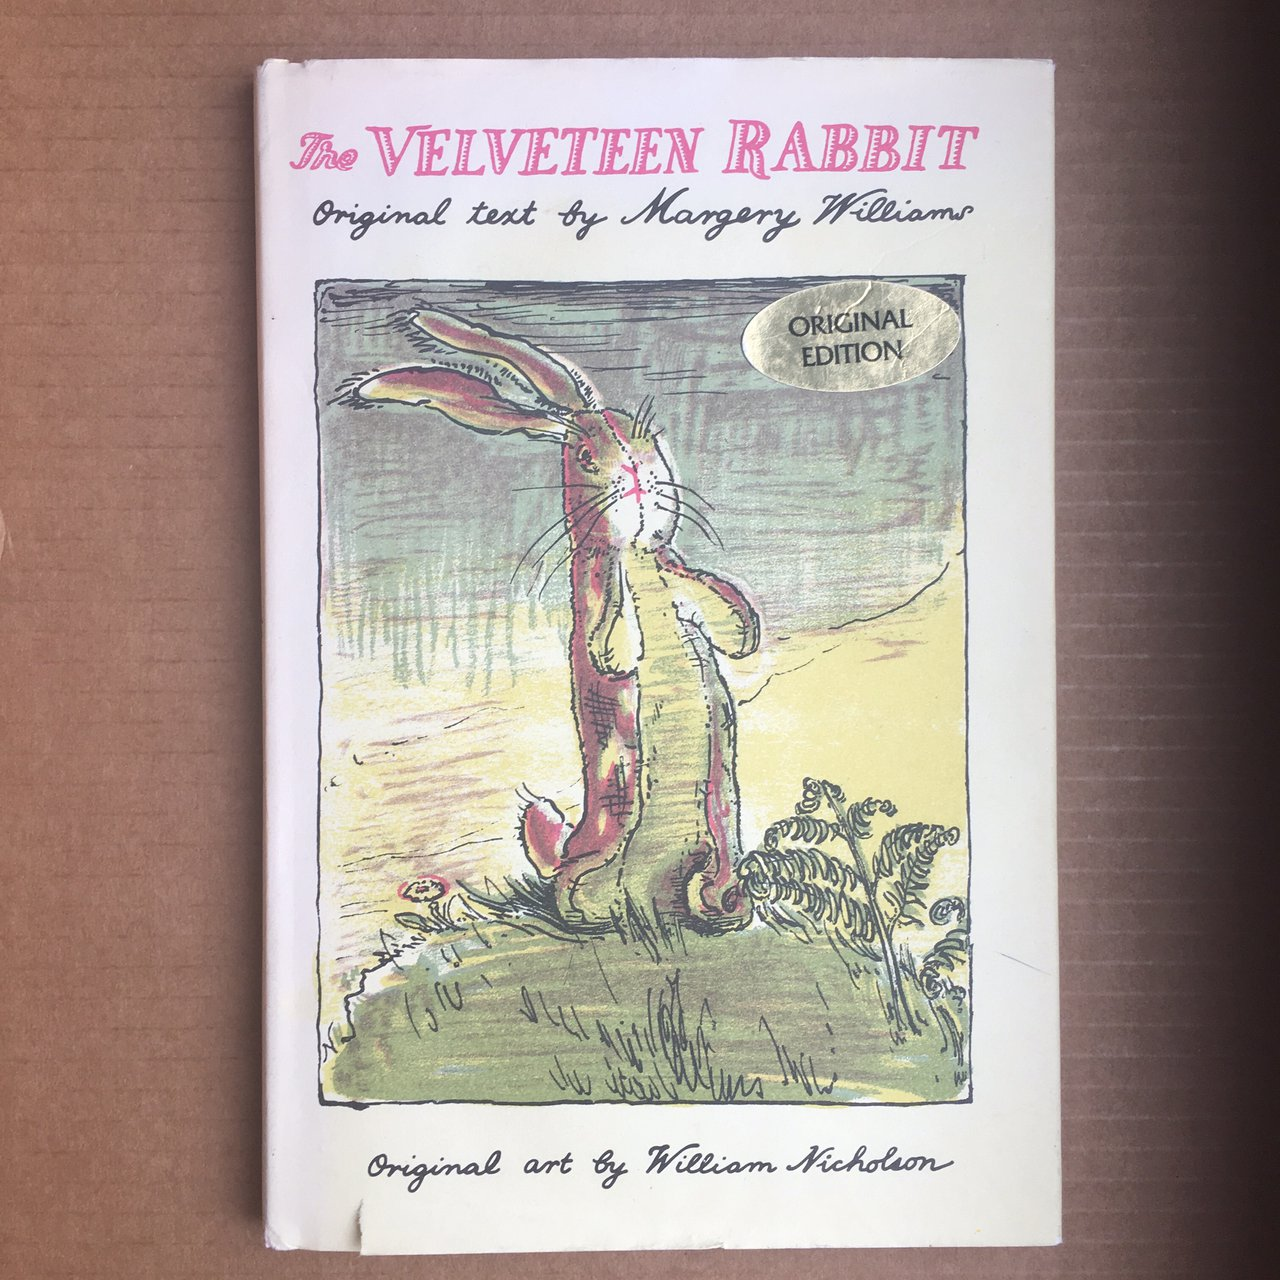 the velveteen rabbit complete text williams margery nicholson william